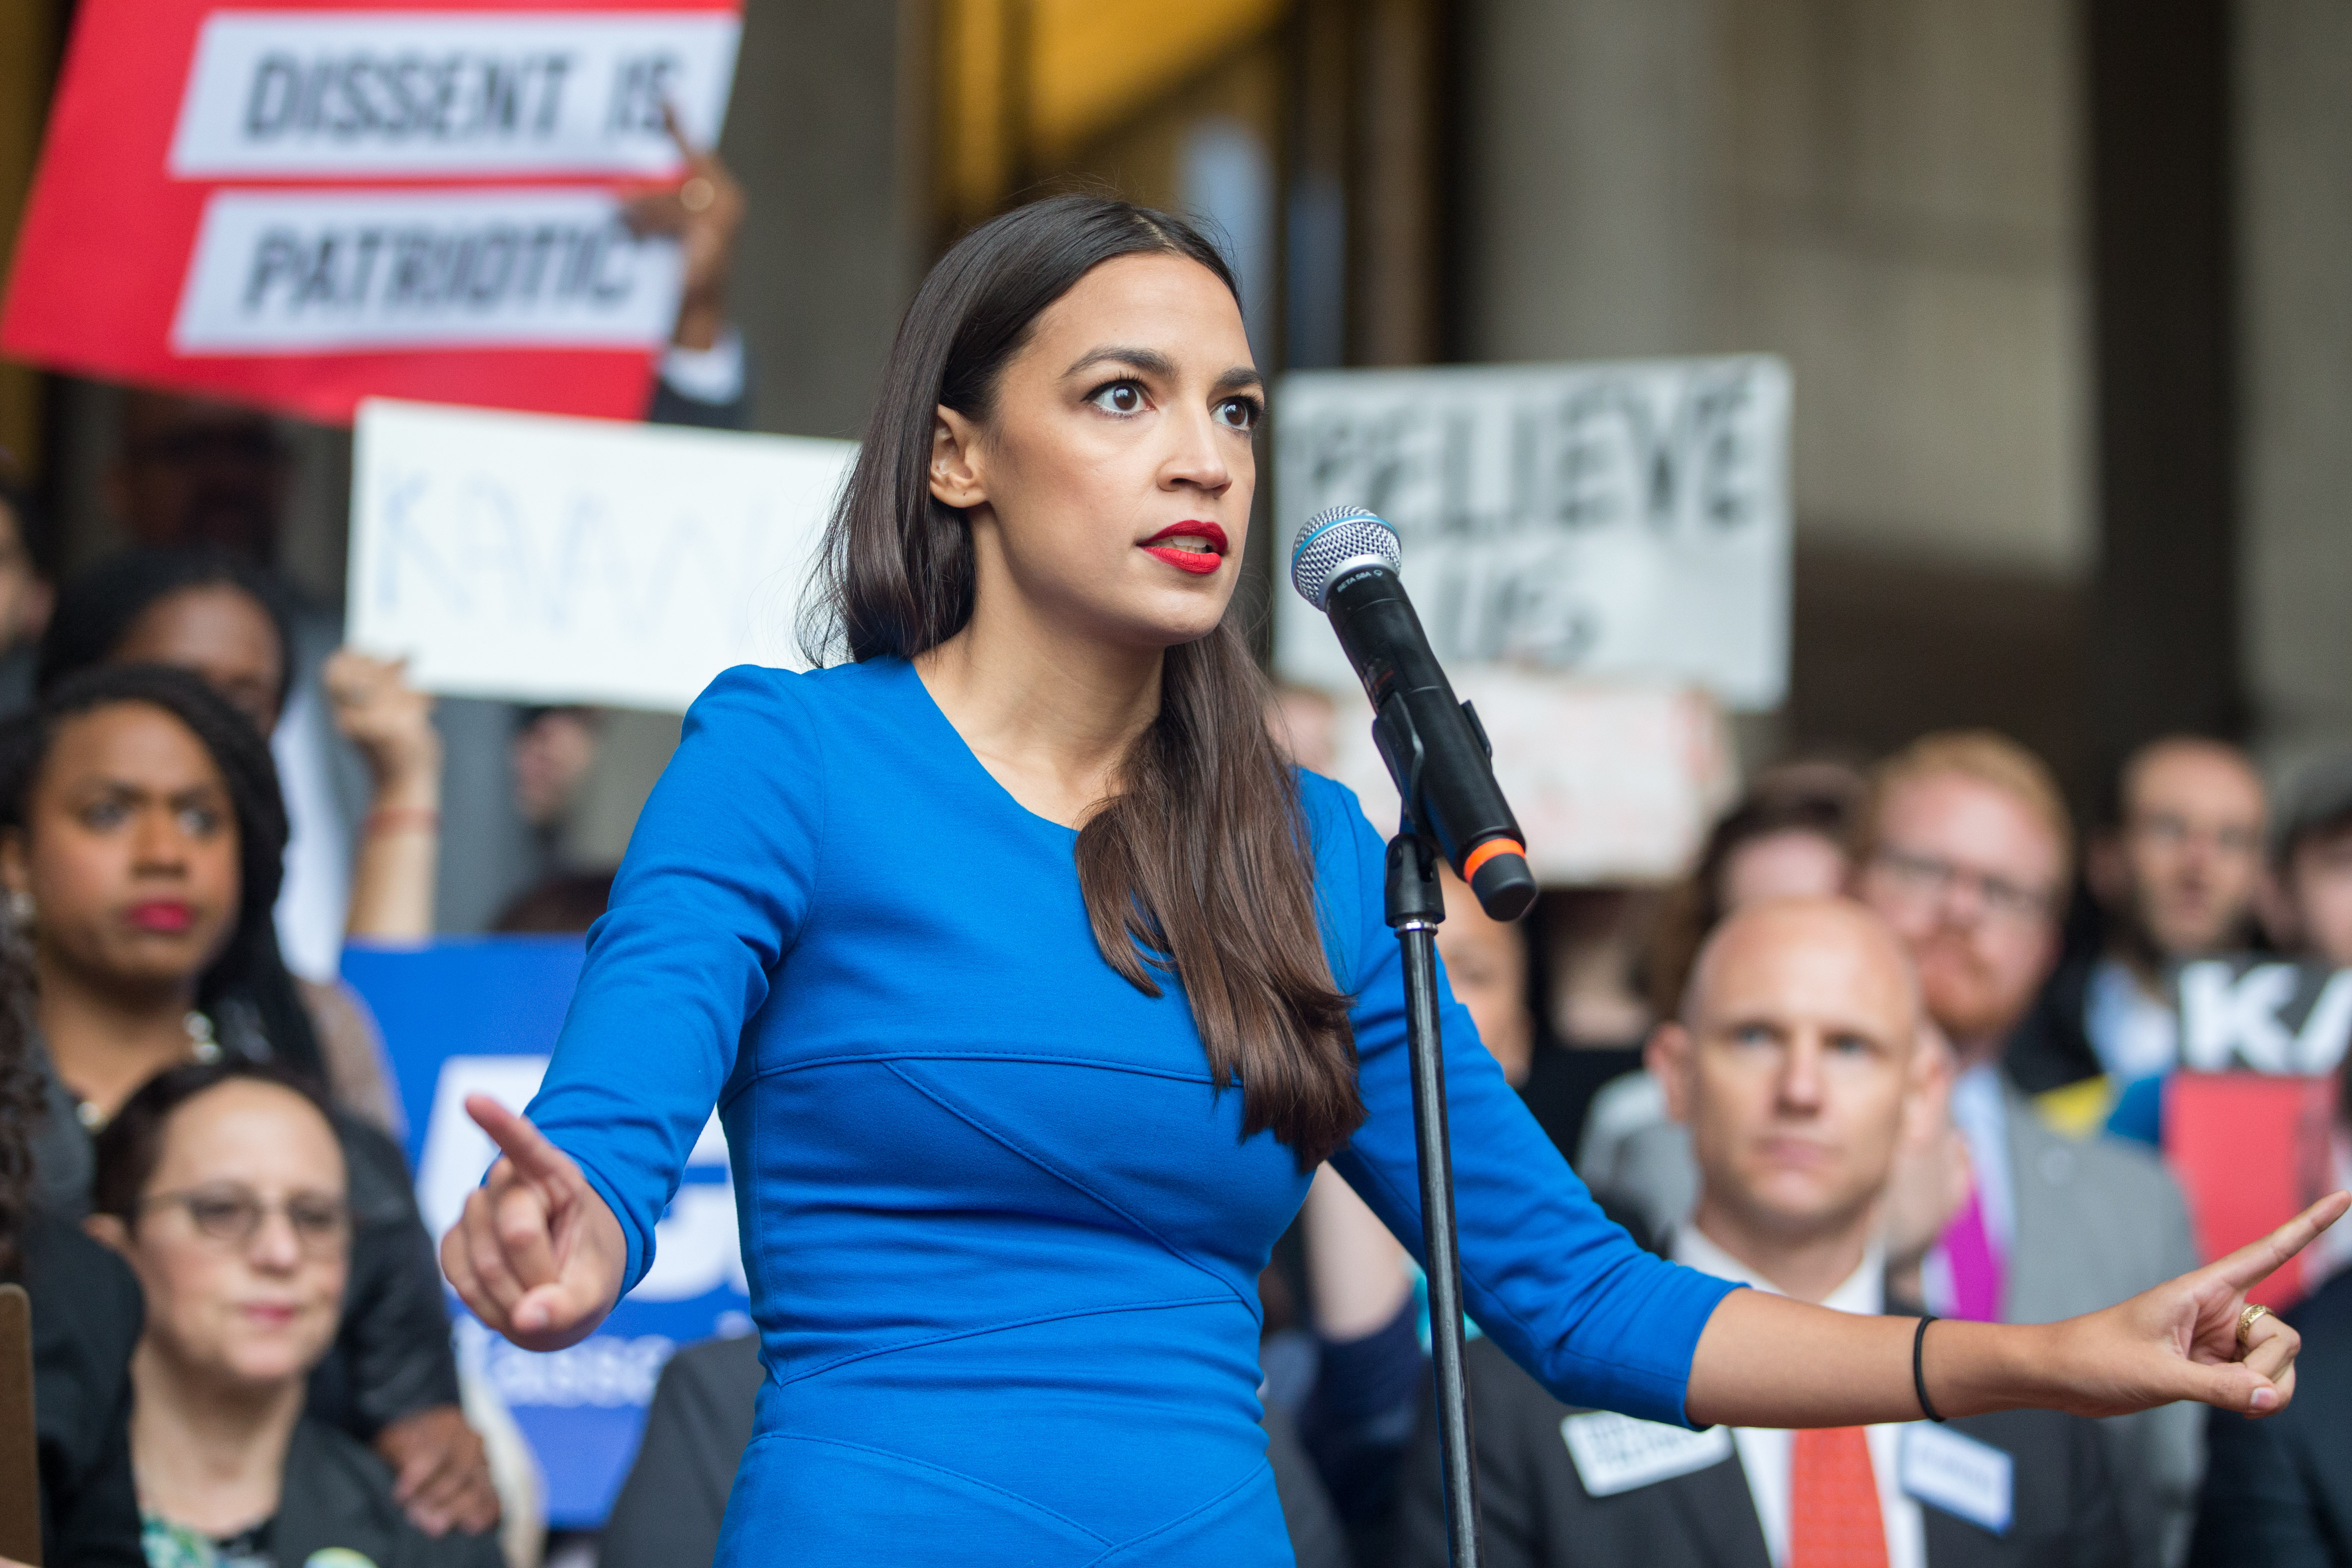 New York Democratic congressional candidate Alexandria Ocasio-Cortez speaks at a rally calling on Sen. Jeff Flake (R-AZ) to reject Judge Brett Kavanaugh's nomination to the Supreme Court on October 1, 2018, in Boston, Massachusetts. (Getty Images)